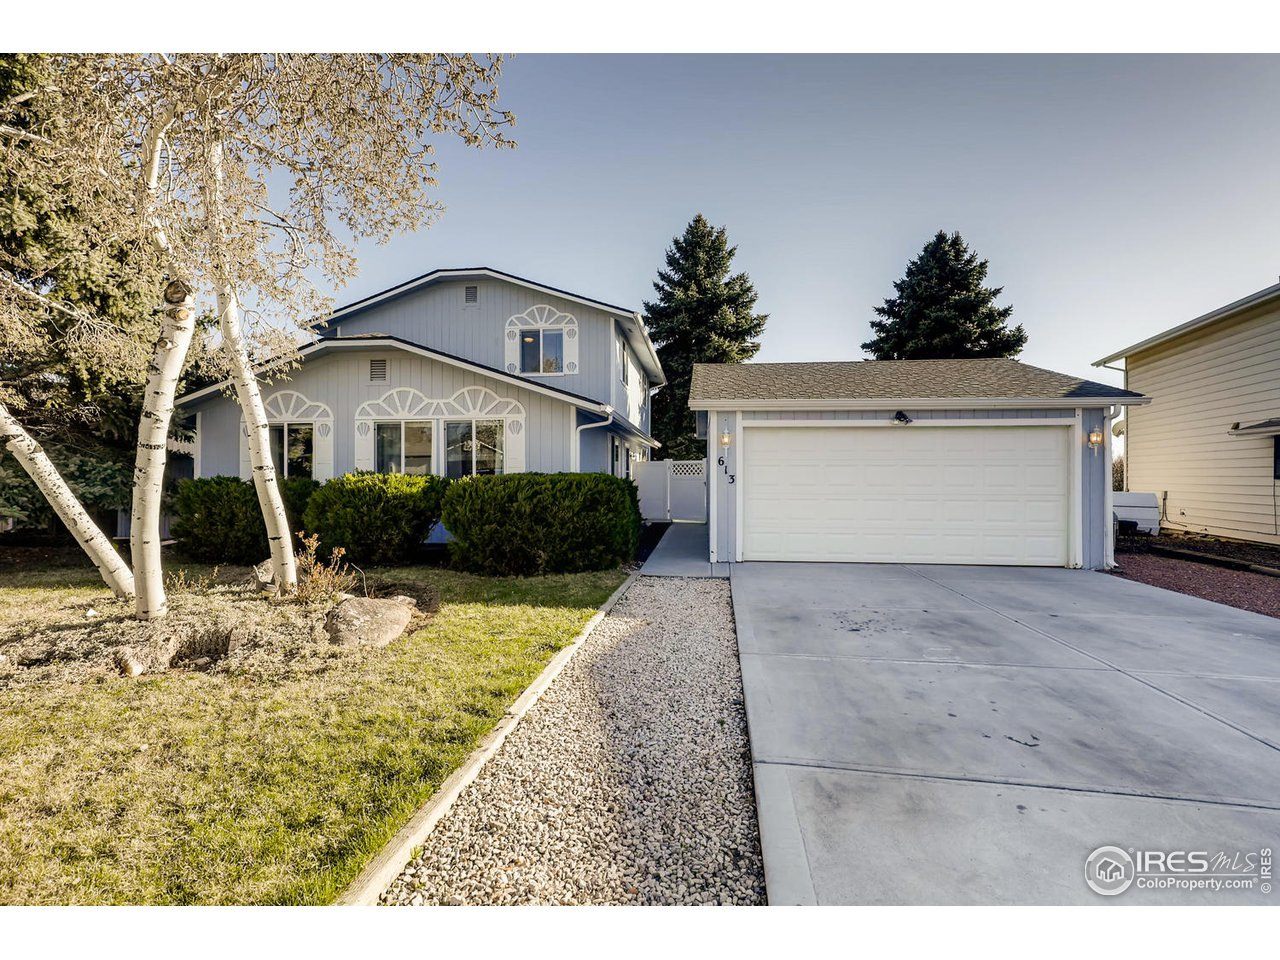 613 Independence Dr, Longmont CO 80504